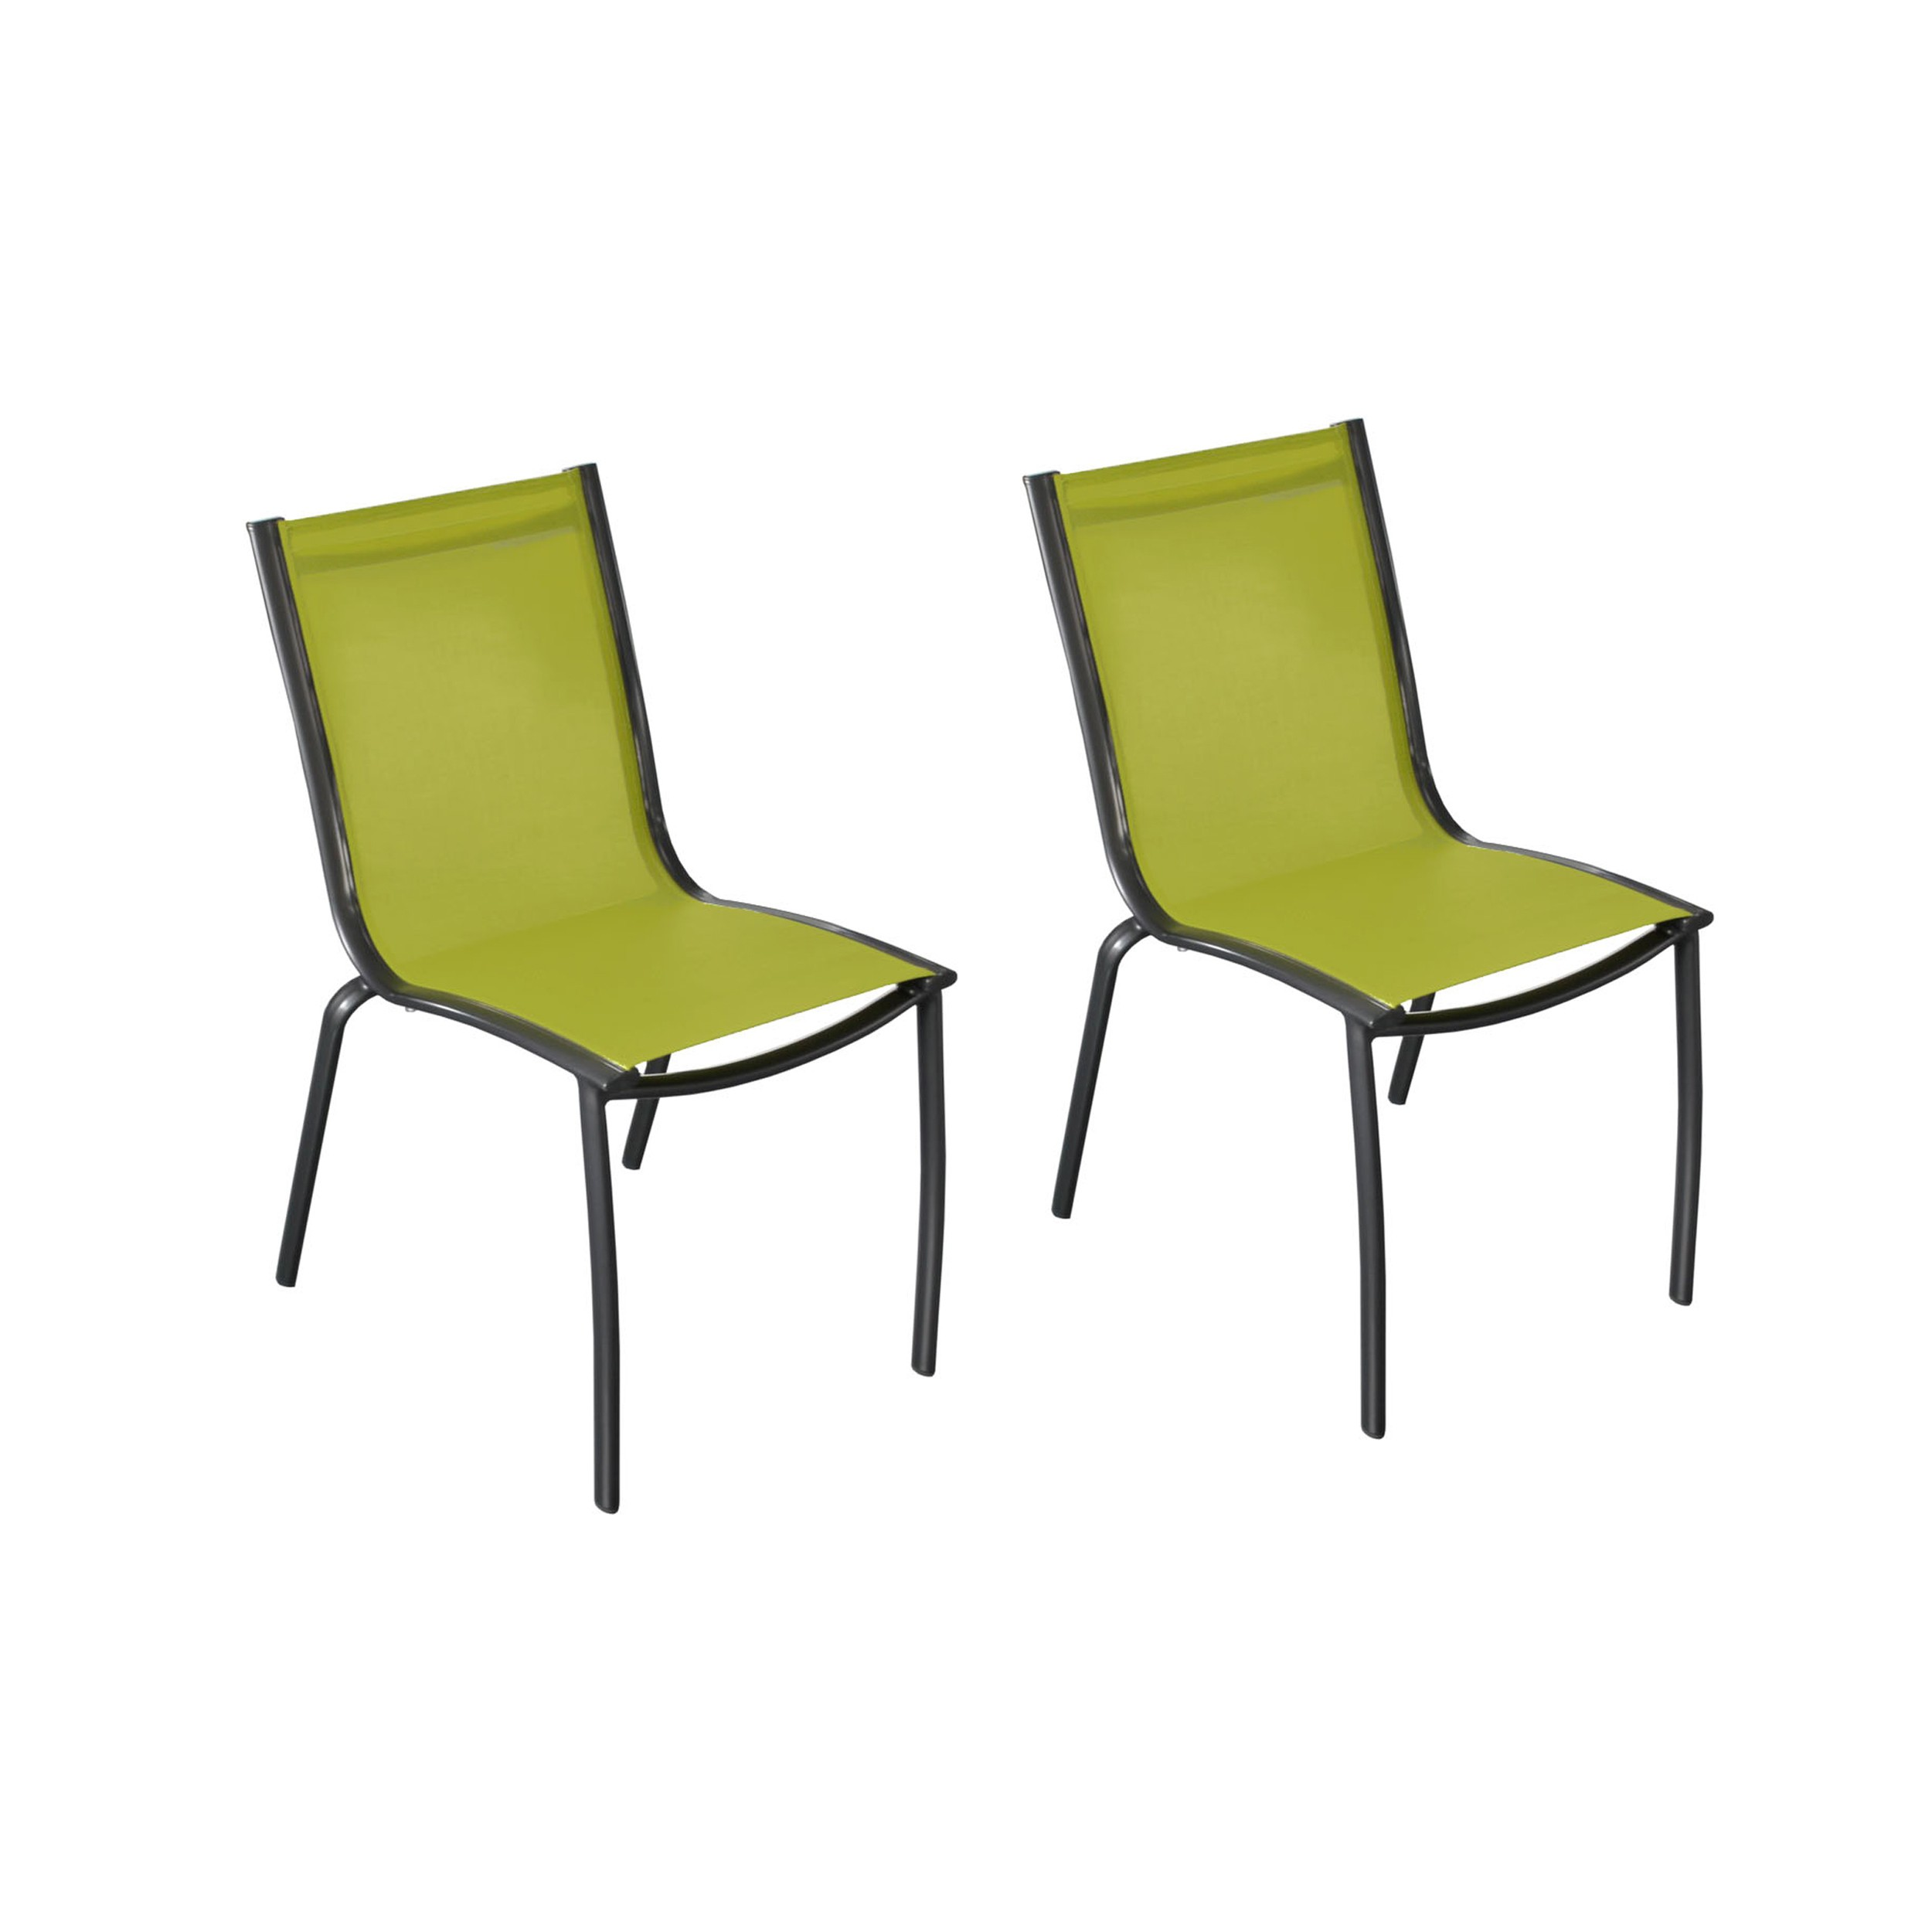 chaise jardin verte affordable chaise jardin verte prix bas with chaise jardin verte amazing. Black Bedroom Furniture Sets. Home Design Ideas